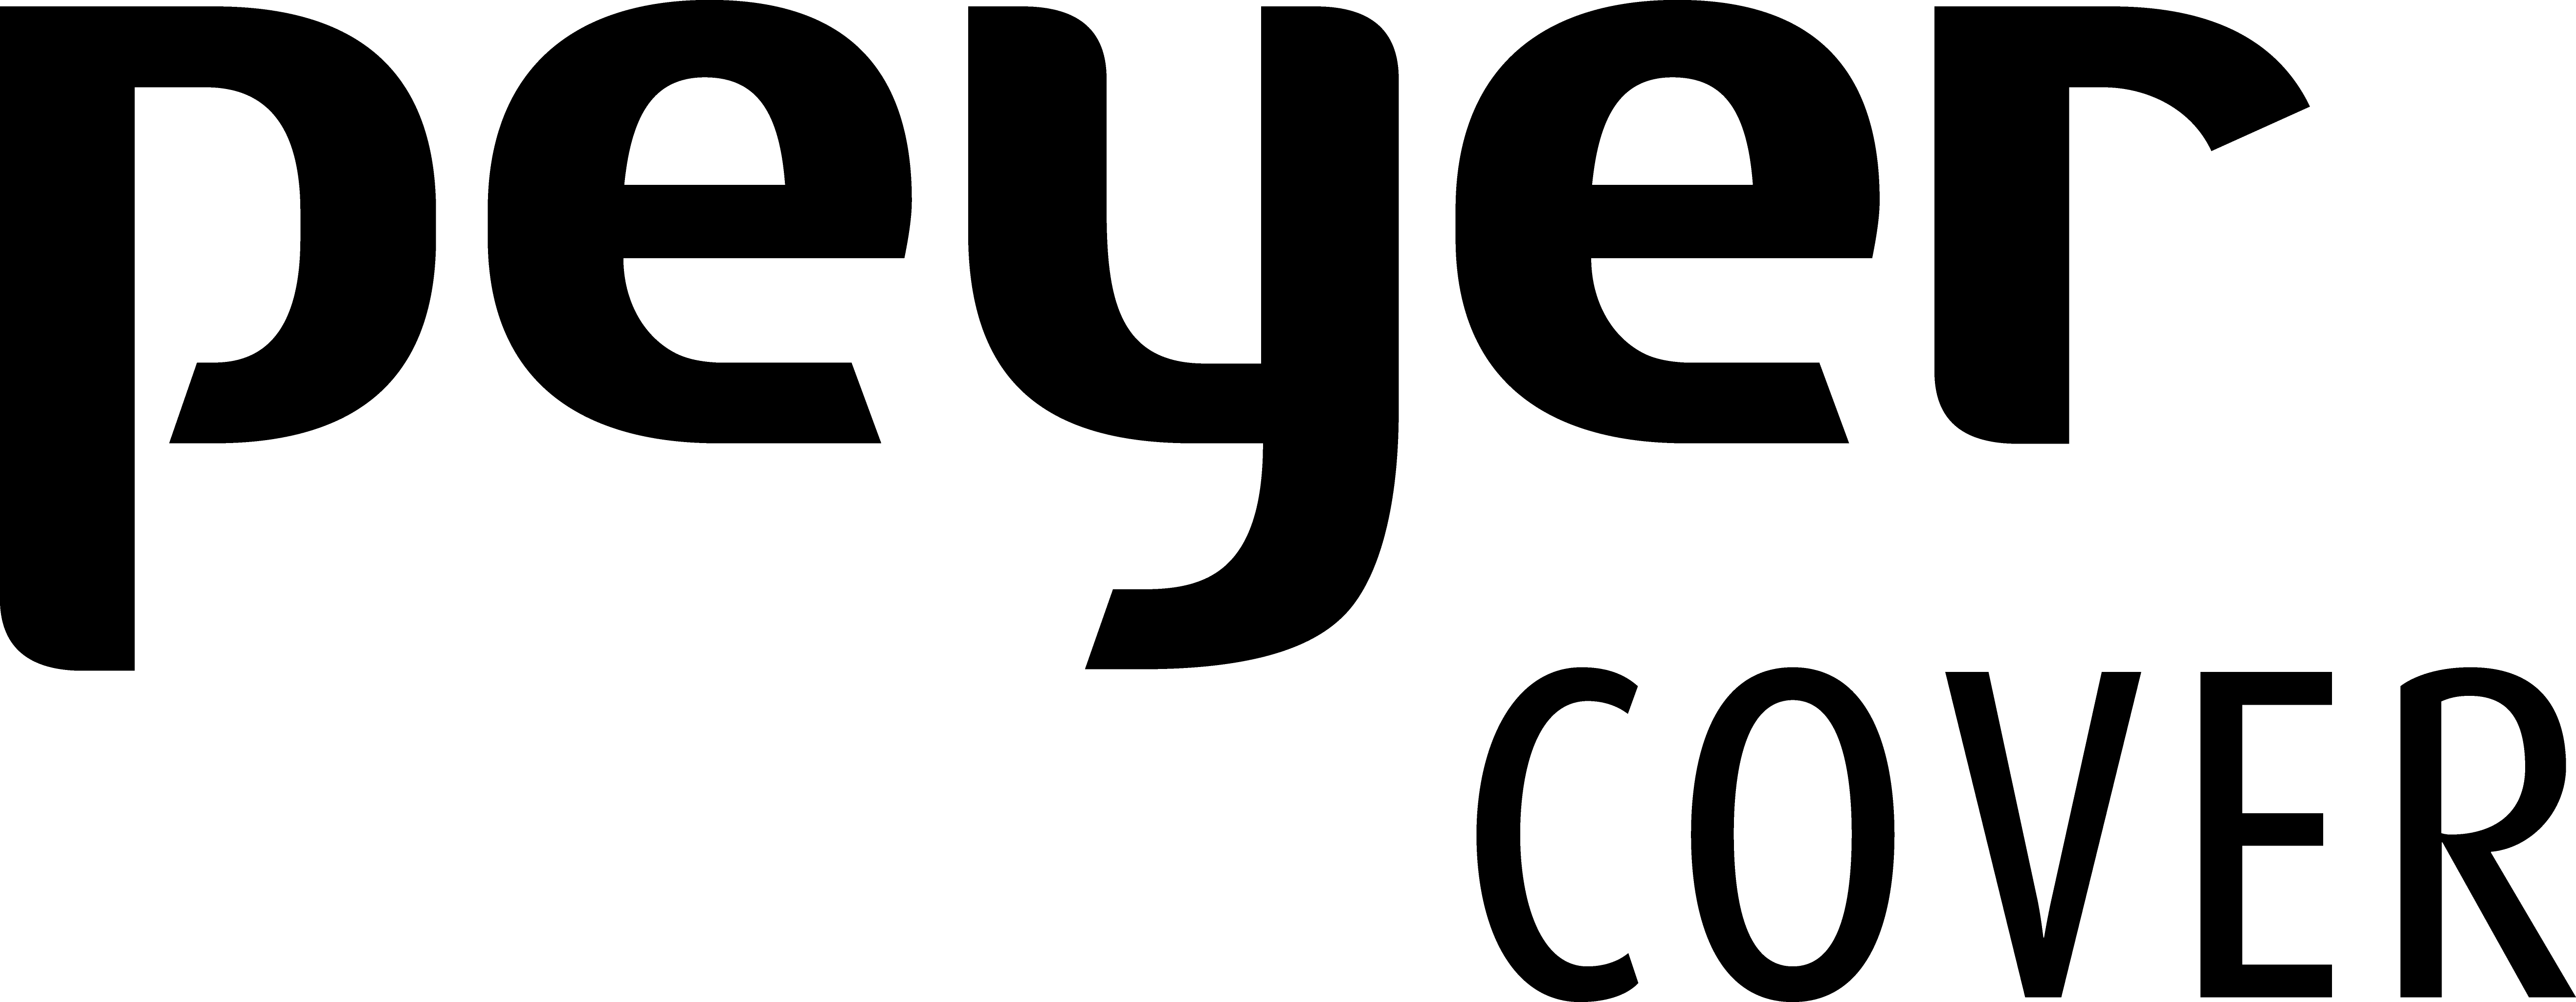 Peyer Cover logo